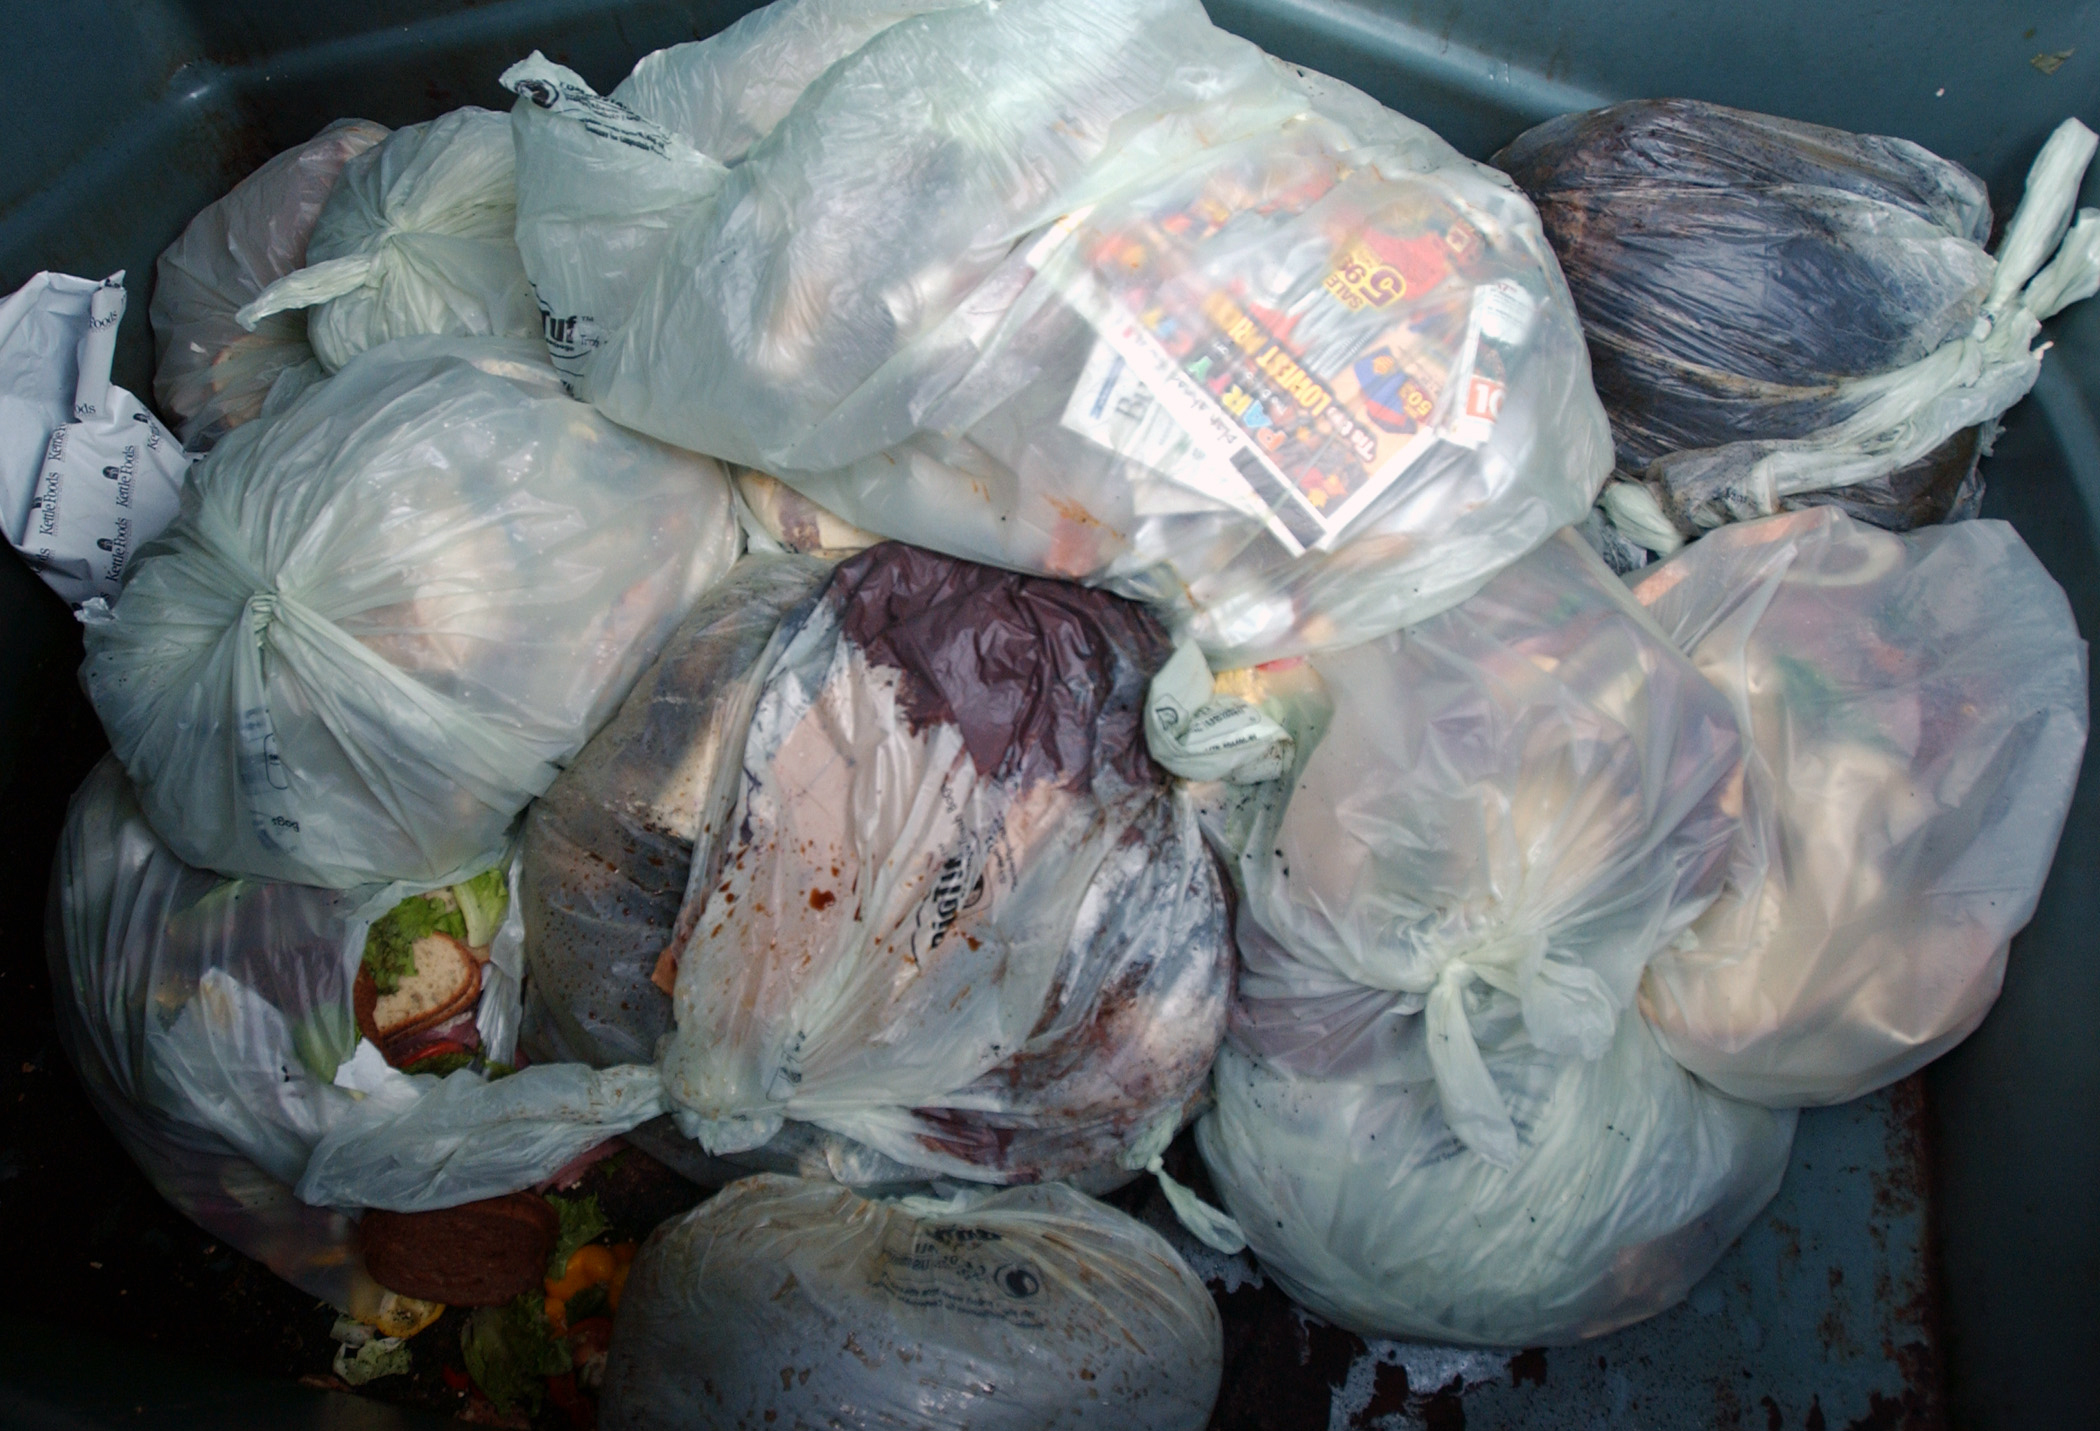 Food waste in biodegradable bags in a dumpster at Portland International Airport in Portland, Ore., Thursday Nov. 20, 2008.